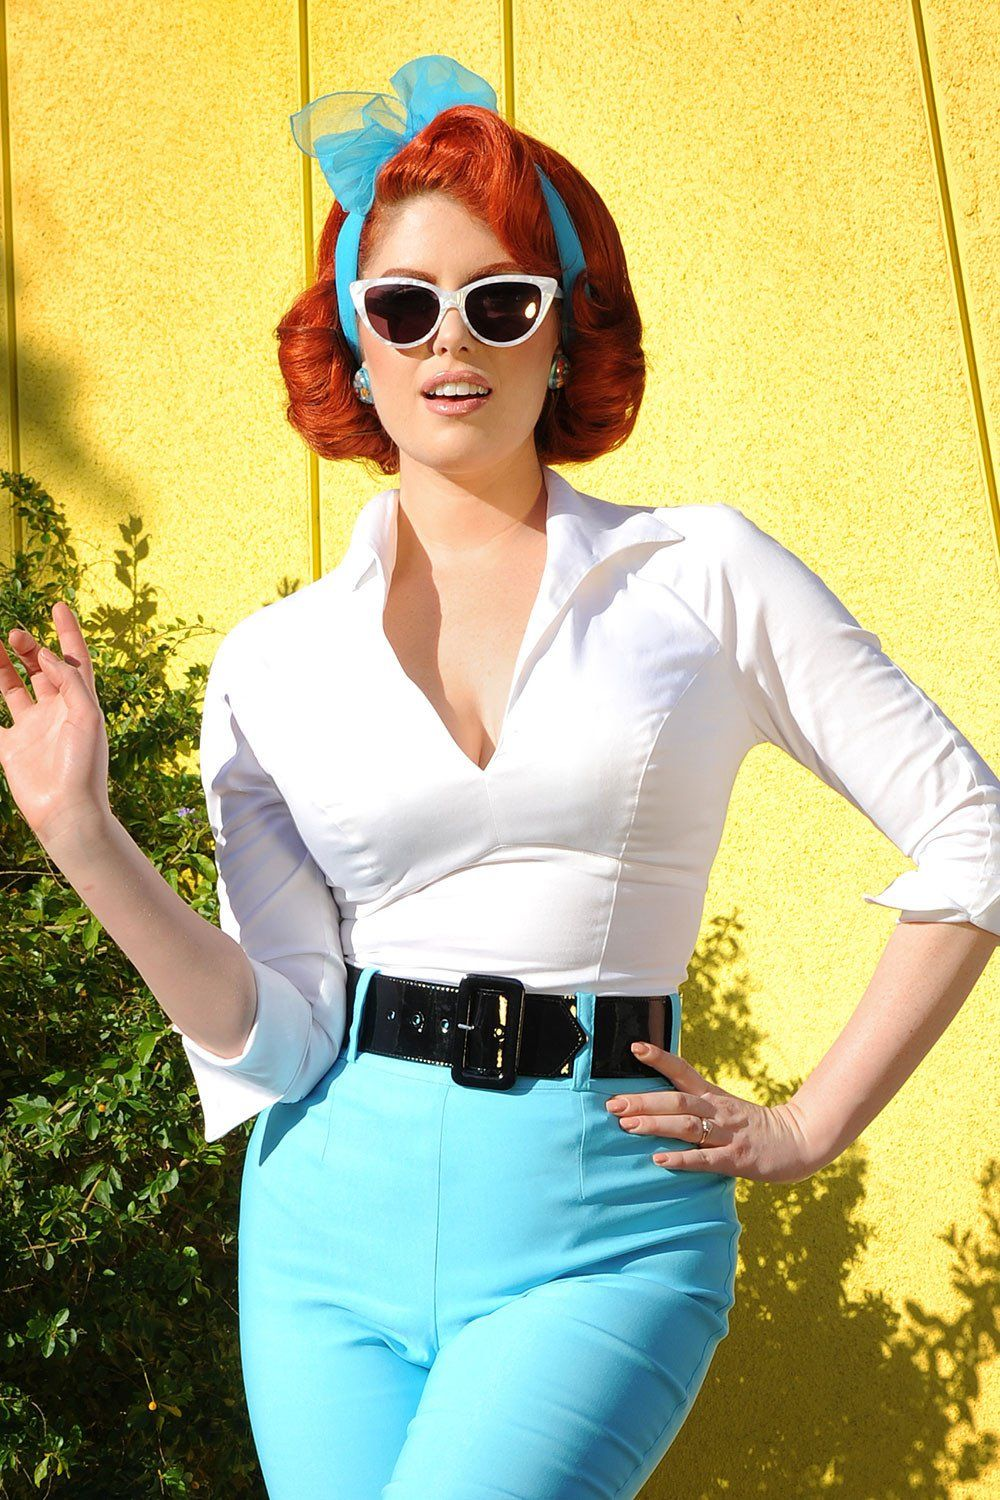 Image result for pinup girl clothing